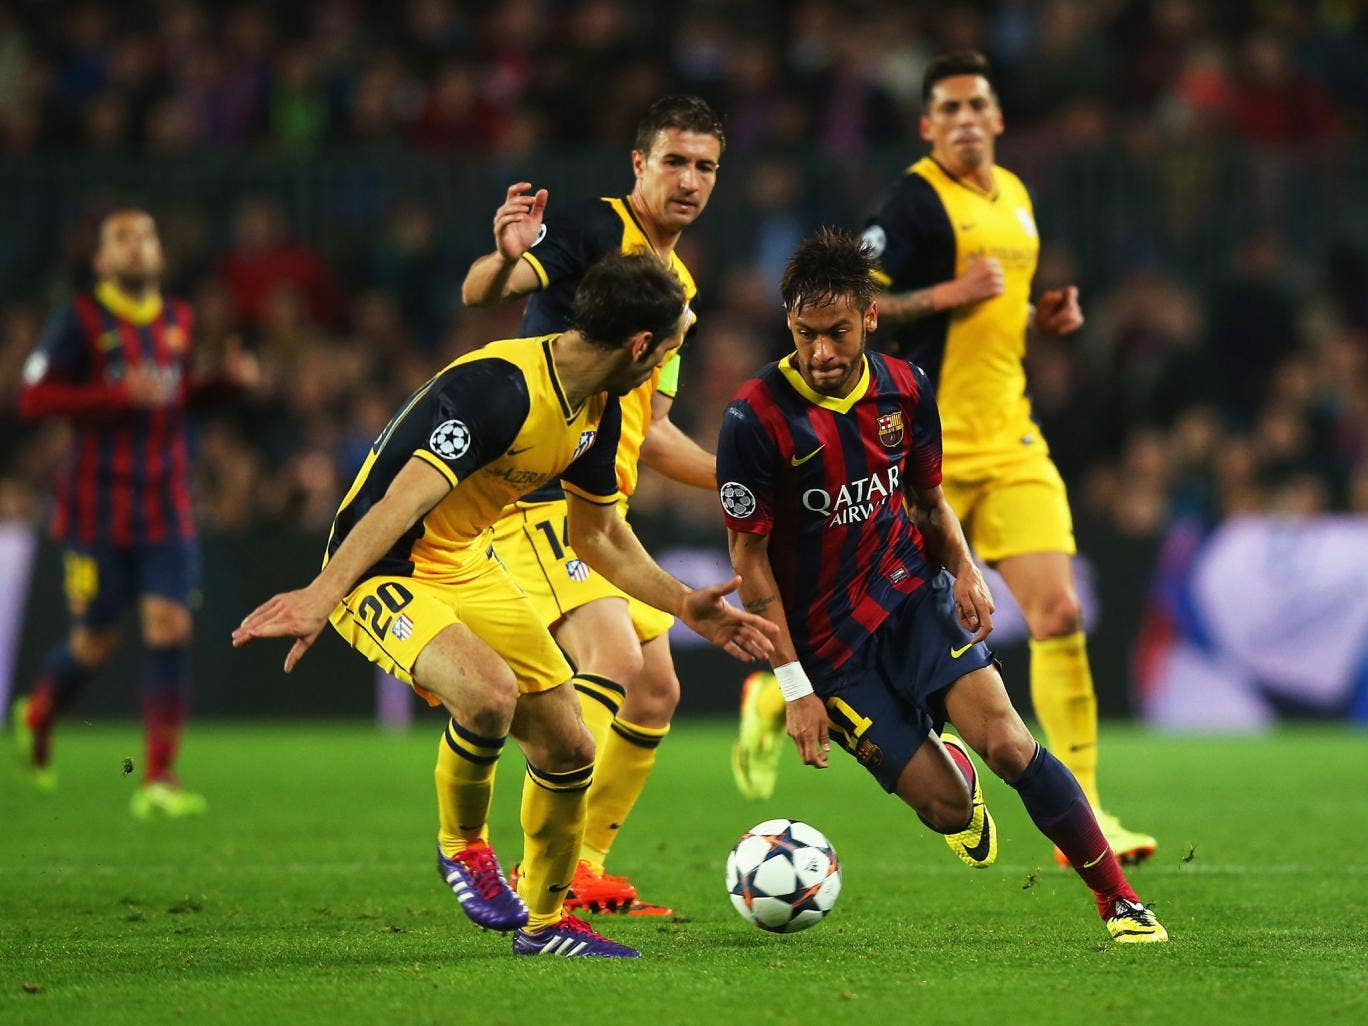 Neymar of Barcelona takes on Juanfran of Club Atletico de Madrid during the UEFA Champions League Quarter Final first leg